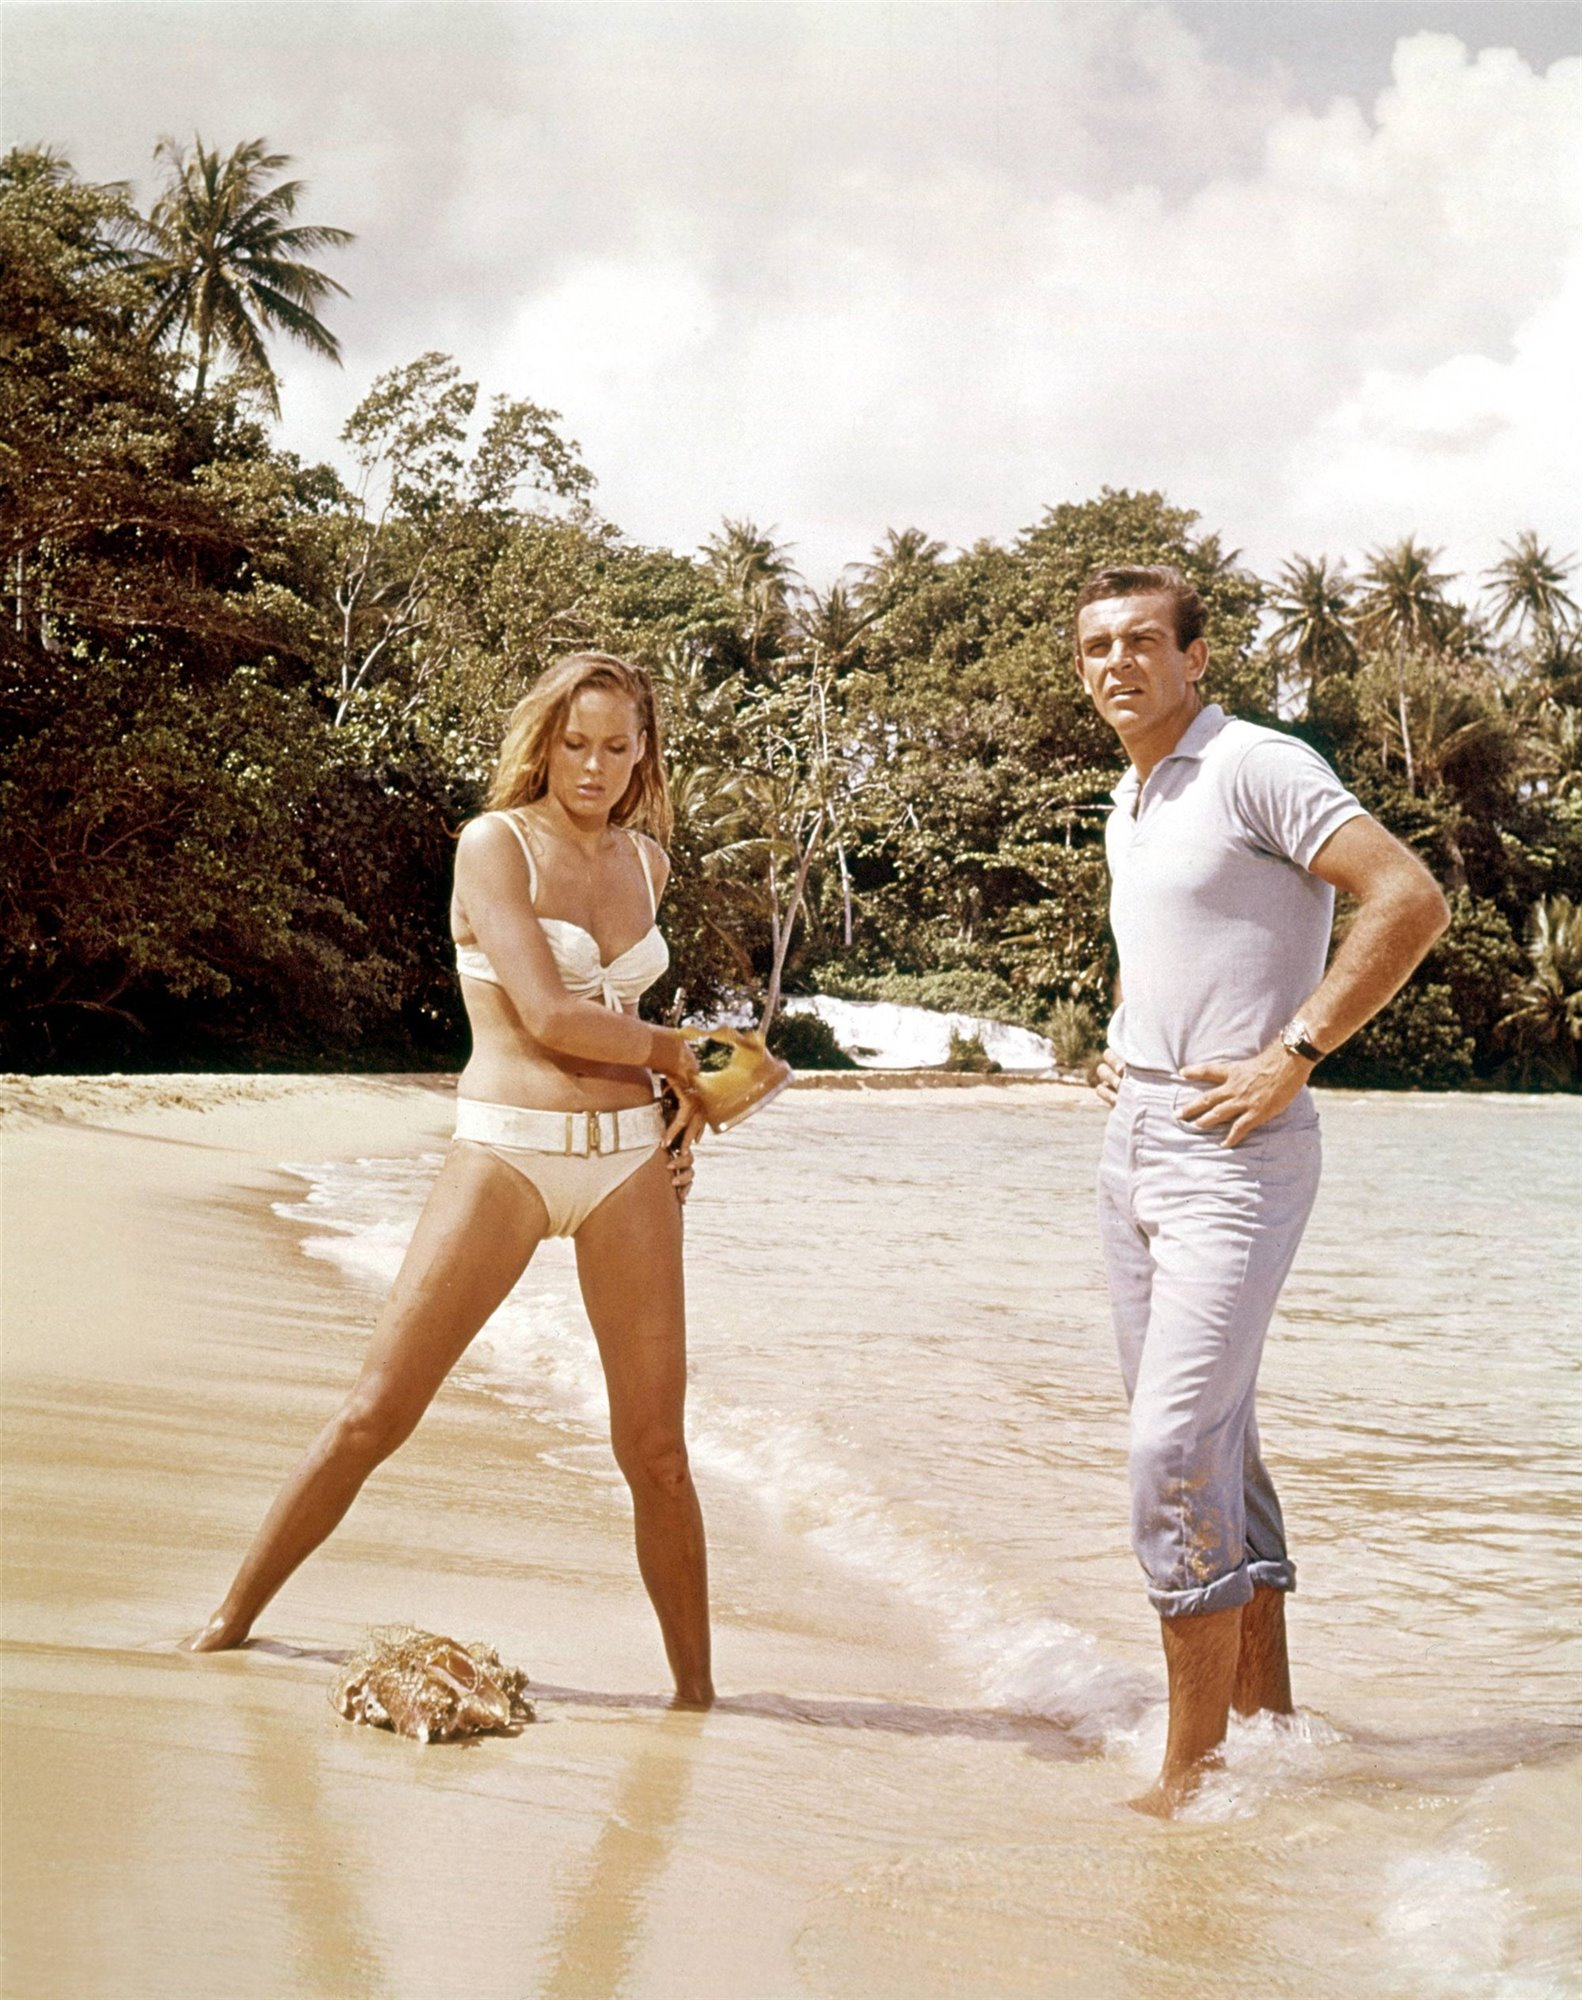 Laughing Waters: Ursula Andress contra el Dr. No